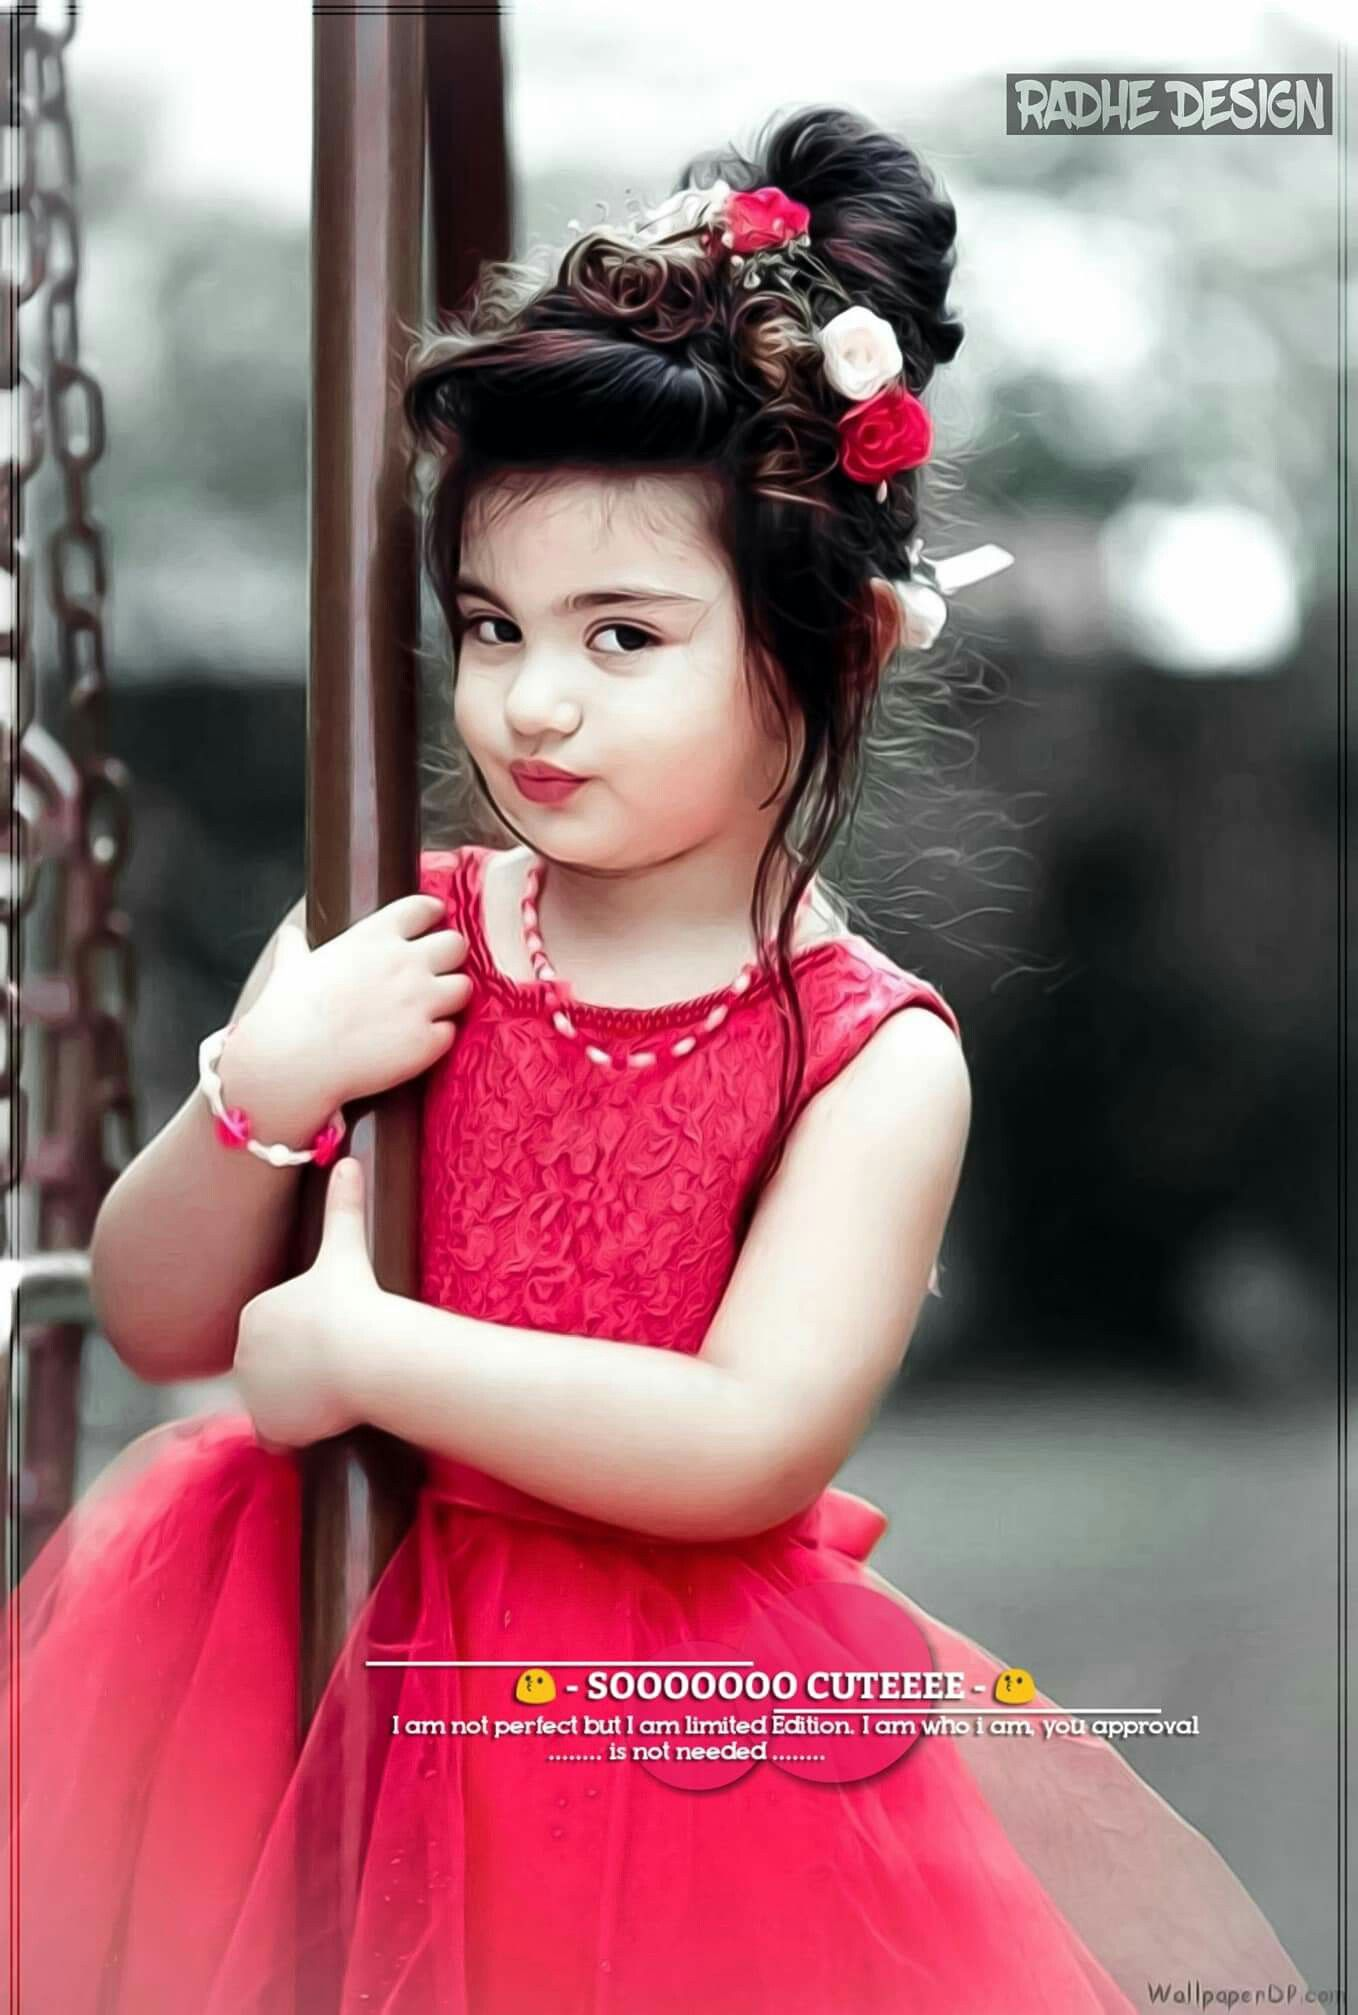 L(*OεV*)E  Cute baby girl wallpaper, Cute baby girl images, Cute